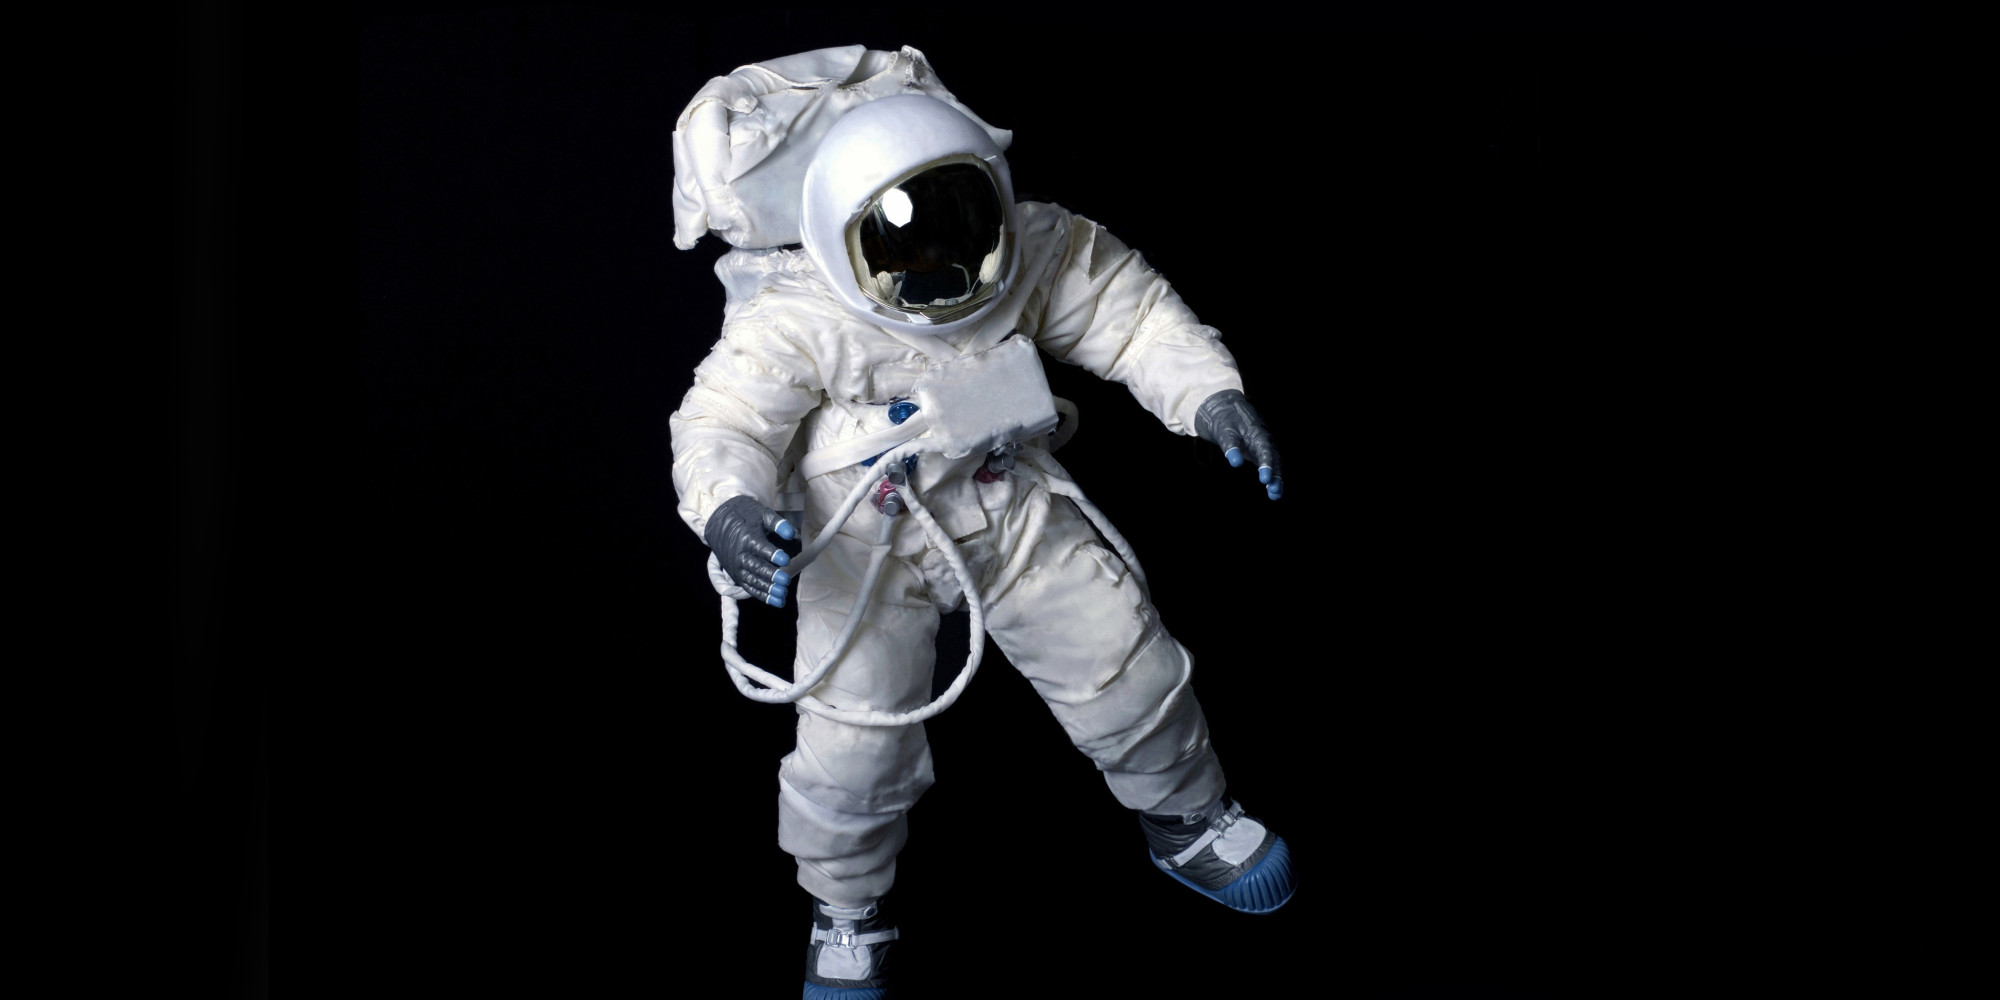 astronaut to space - photo #49